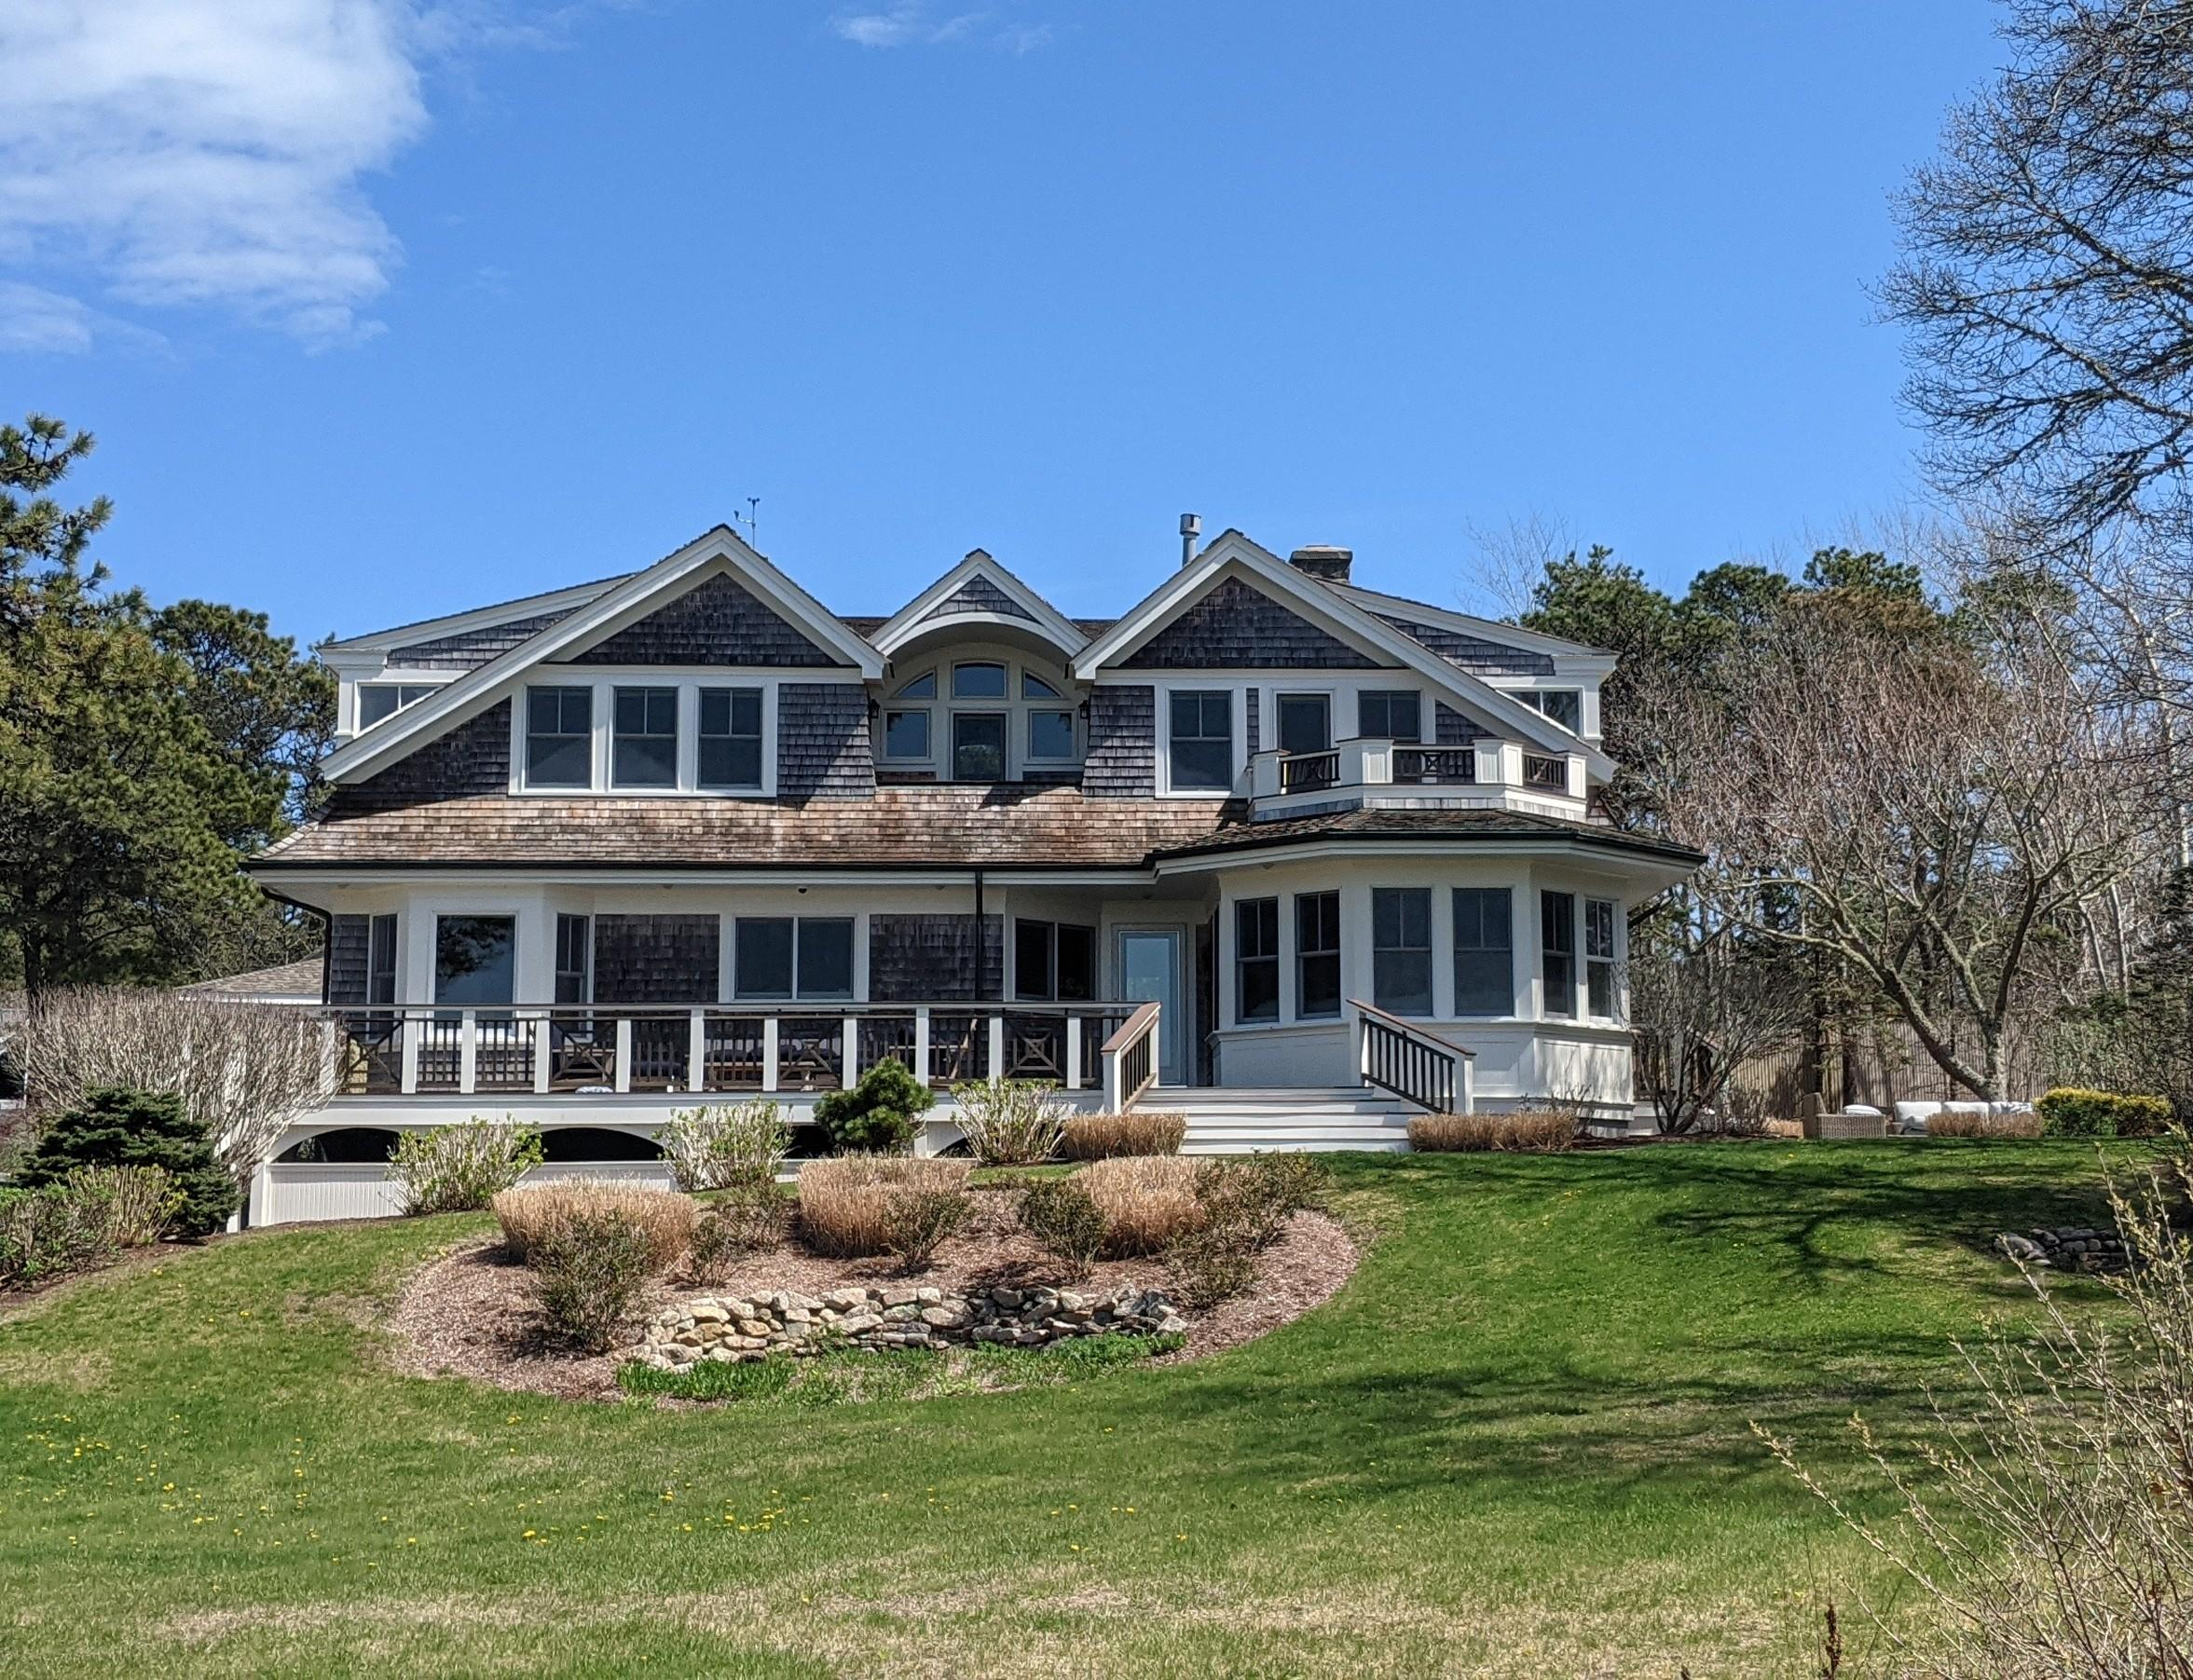 141 Bucks Creek Road, Chatham MA, 02633 sales details